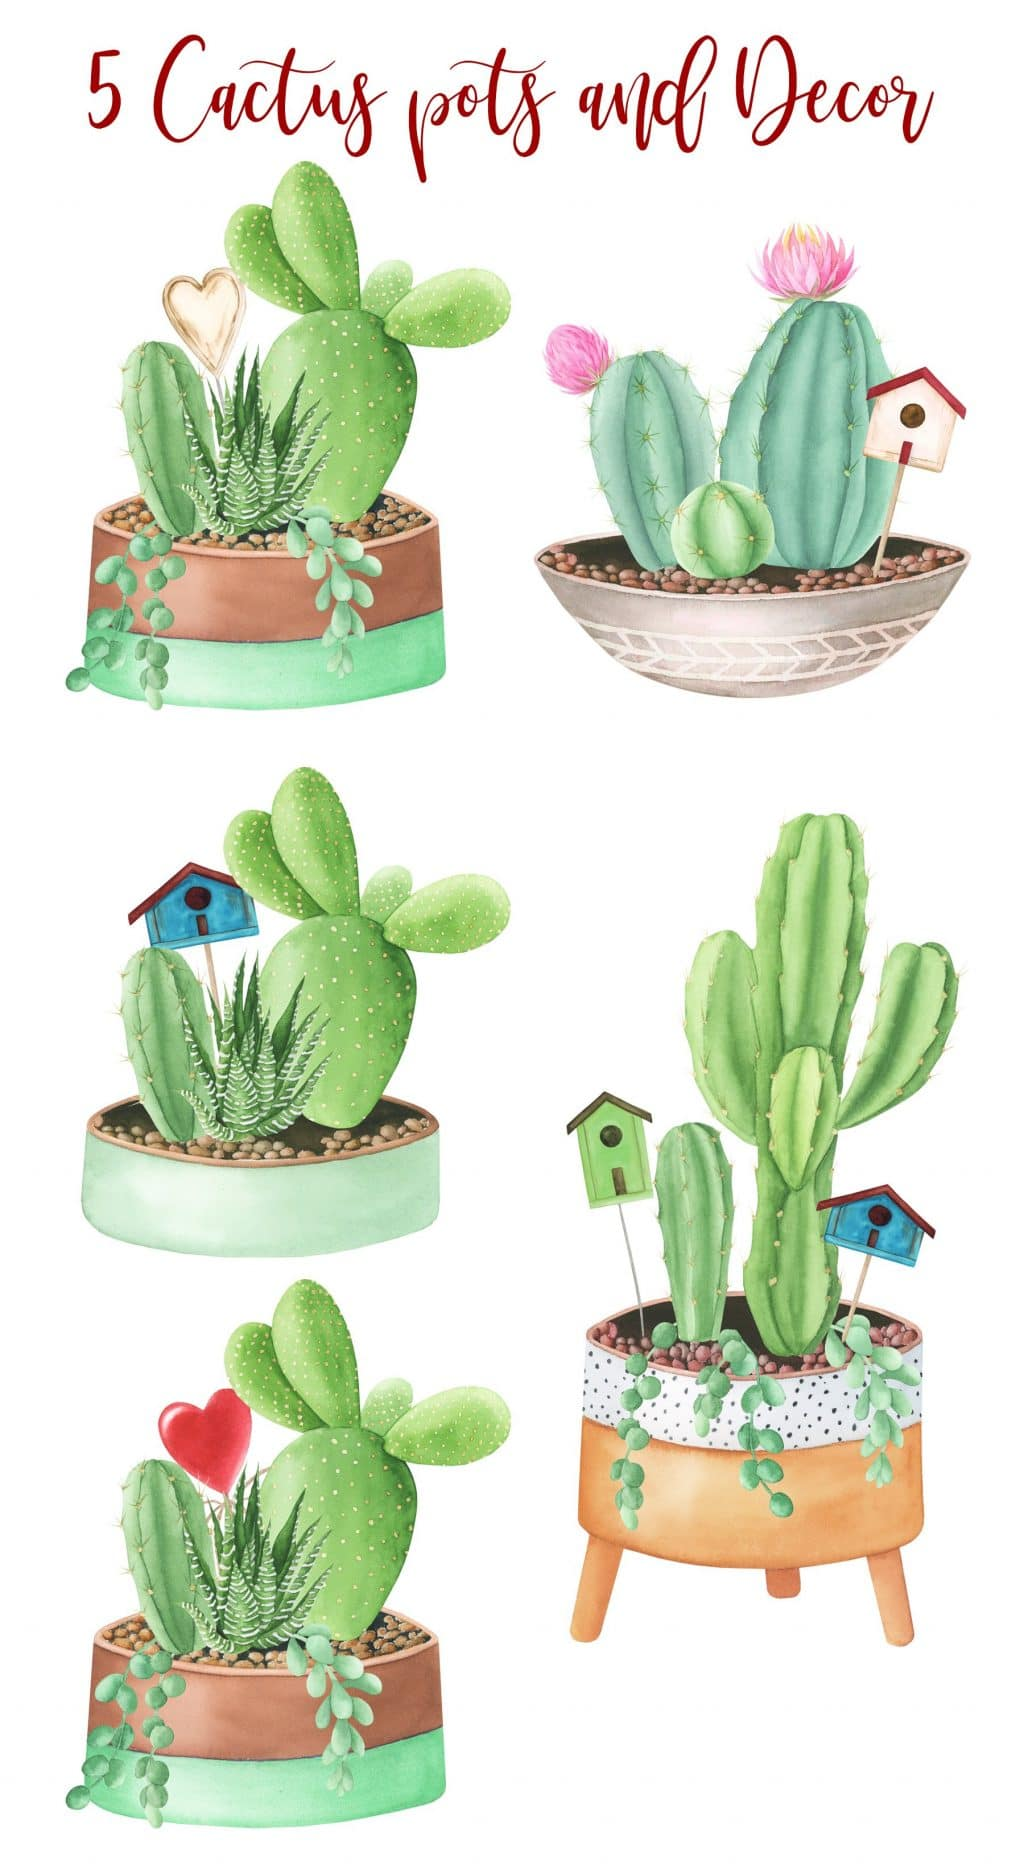 240+ Cactus Clipart 2021: Free and Premium Collections - title pots3